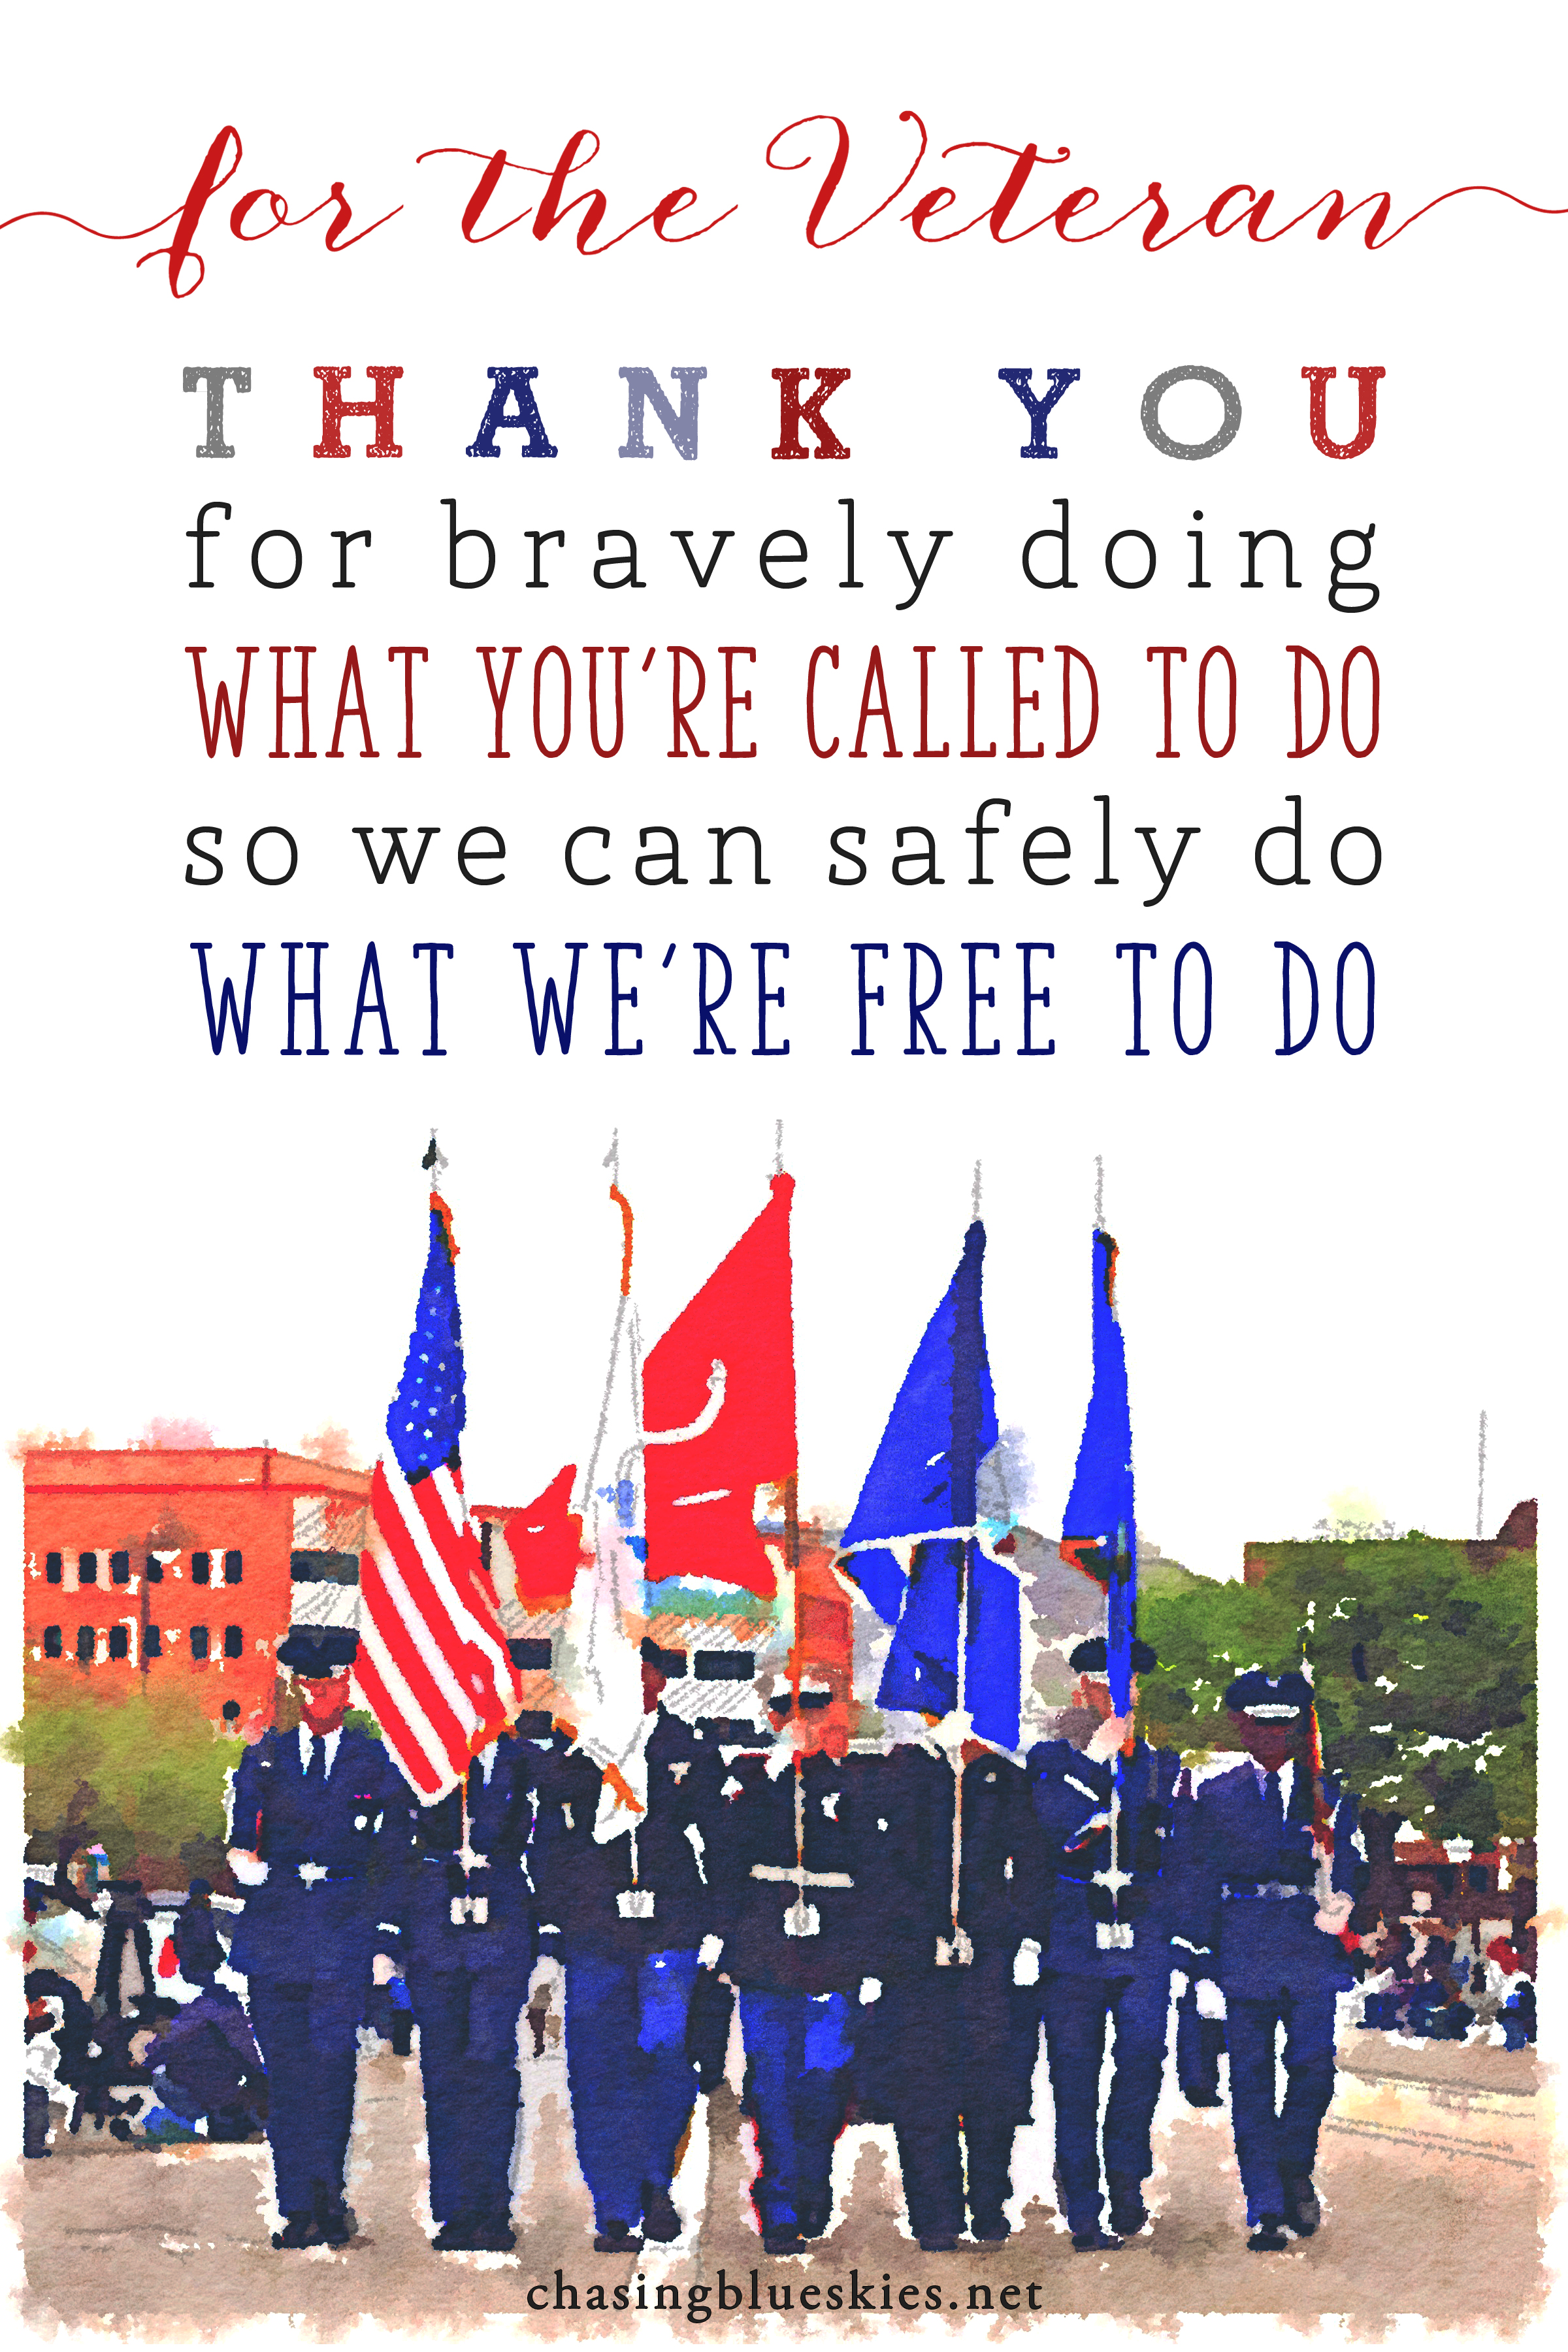 A Thank You To The Veteran And A Prayer For The Military